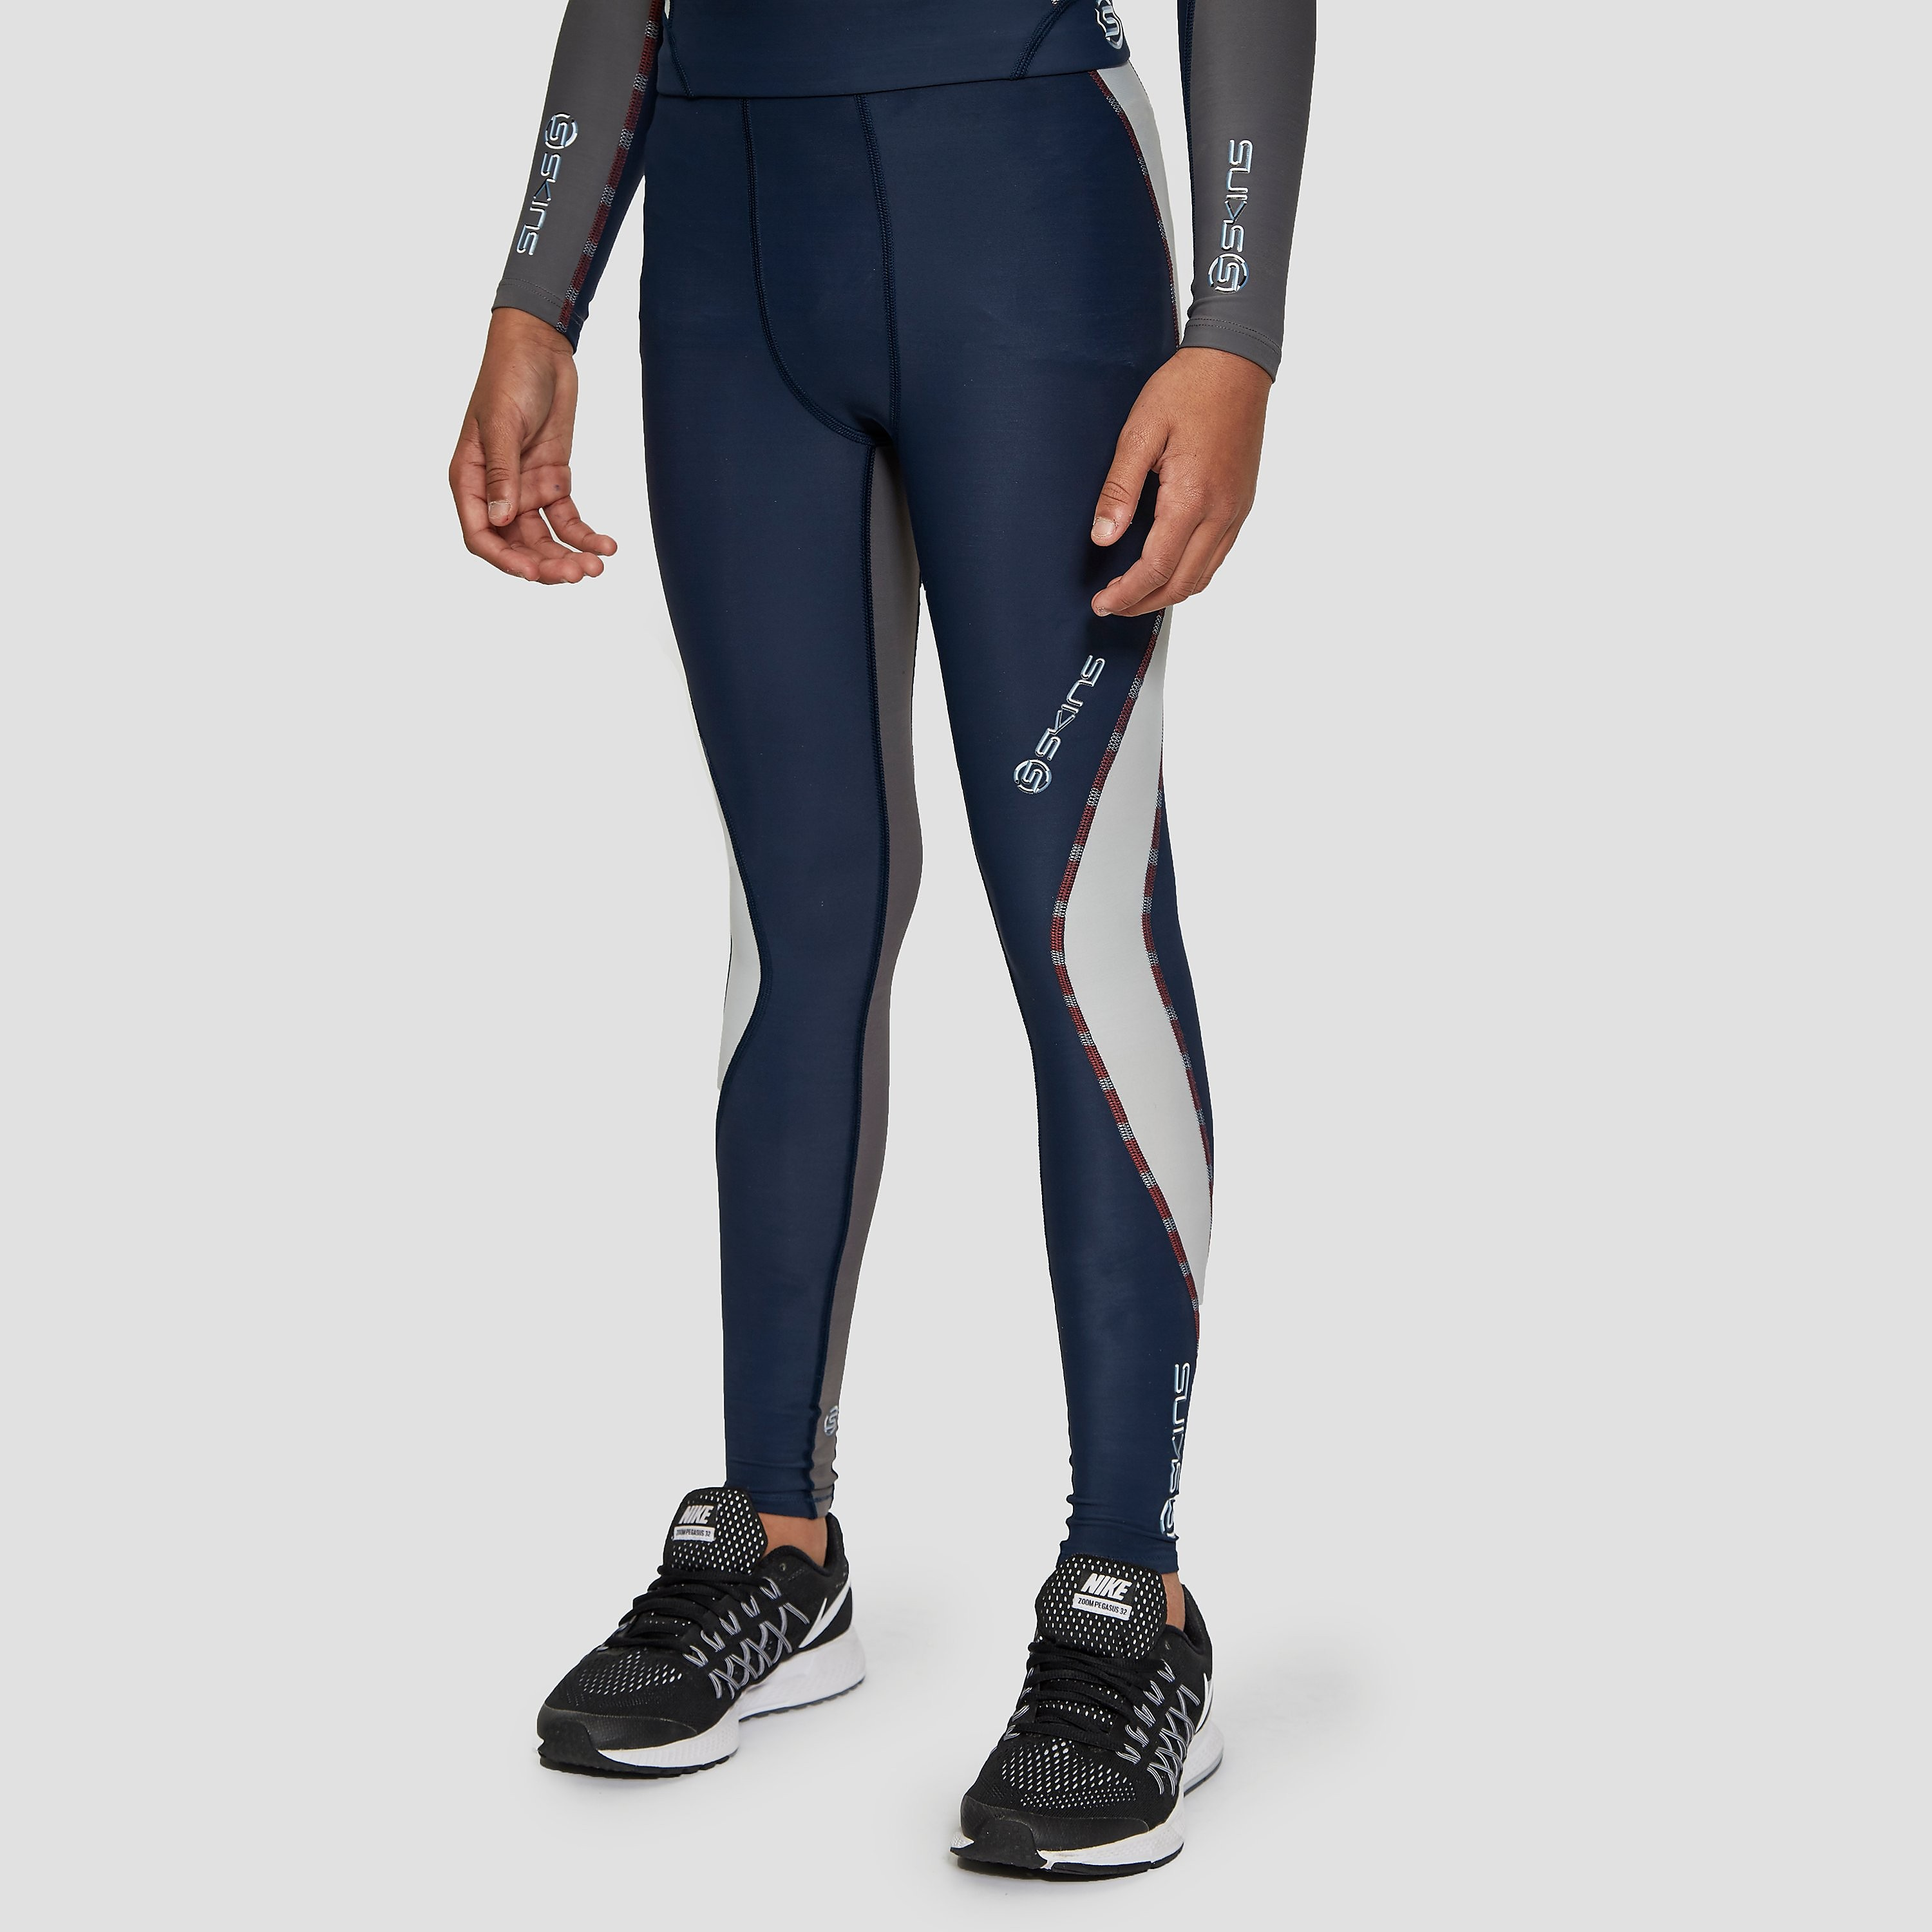 Skins DNAmic Junior Long Compression Tights